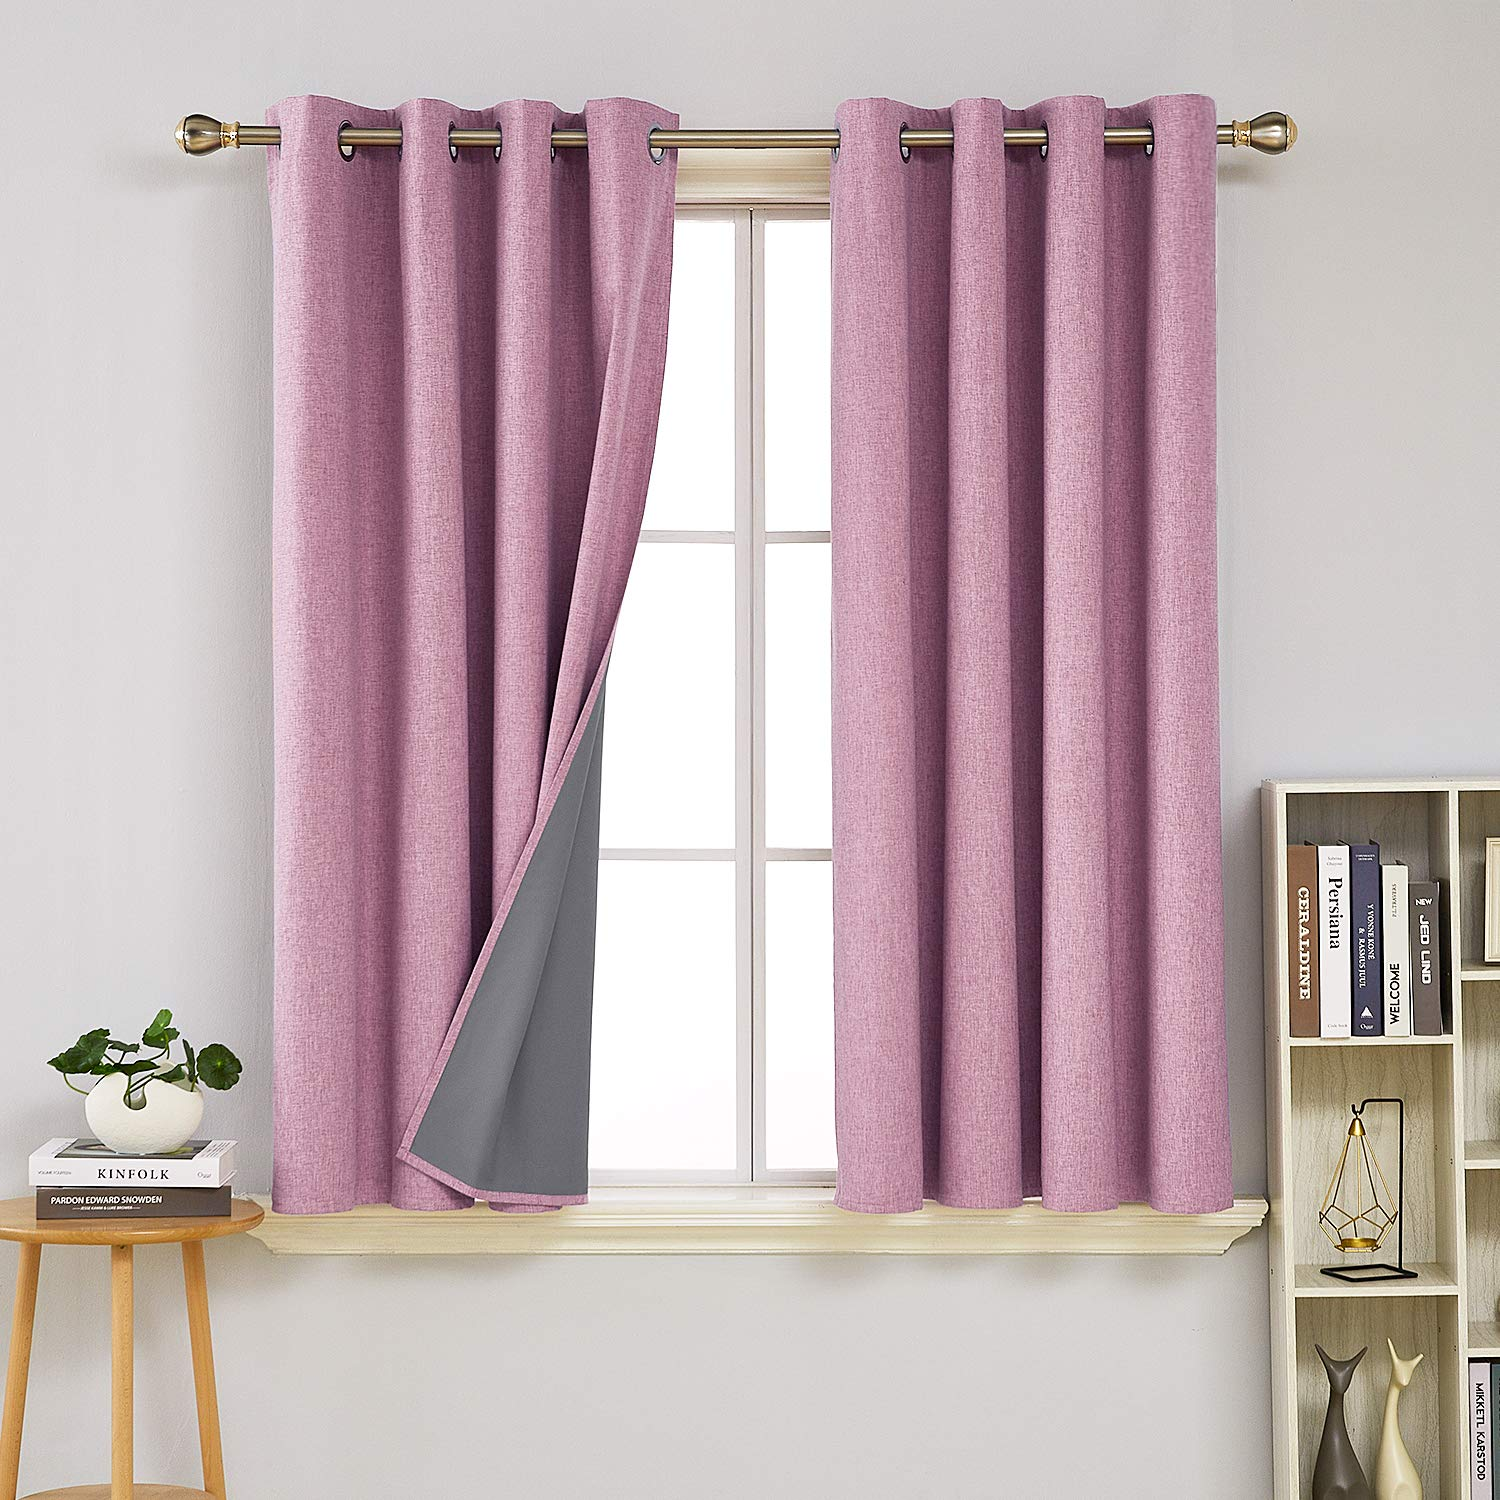 Deconovo Completely Room Darkening Blackout Curtains with Grey Coating Light Blocking Window Curtain for Girls Bedroom Pink 52W x 54L inch 2 Panels